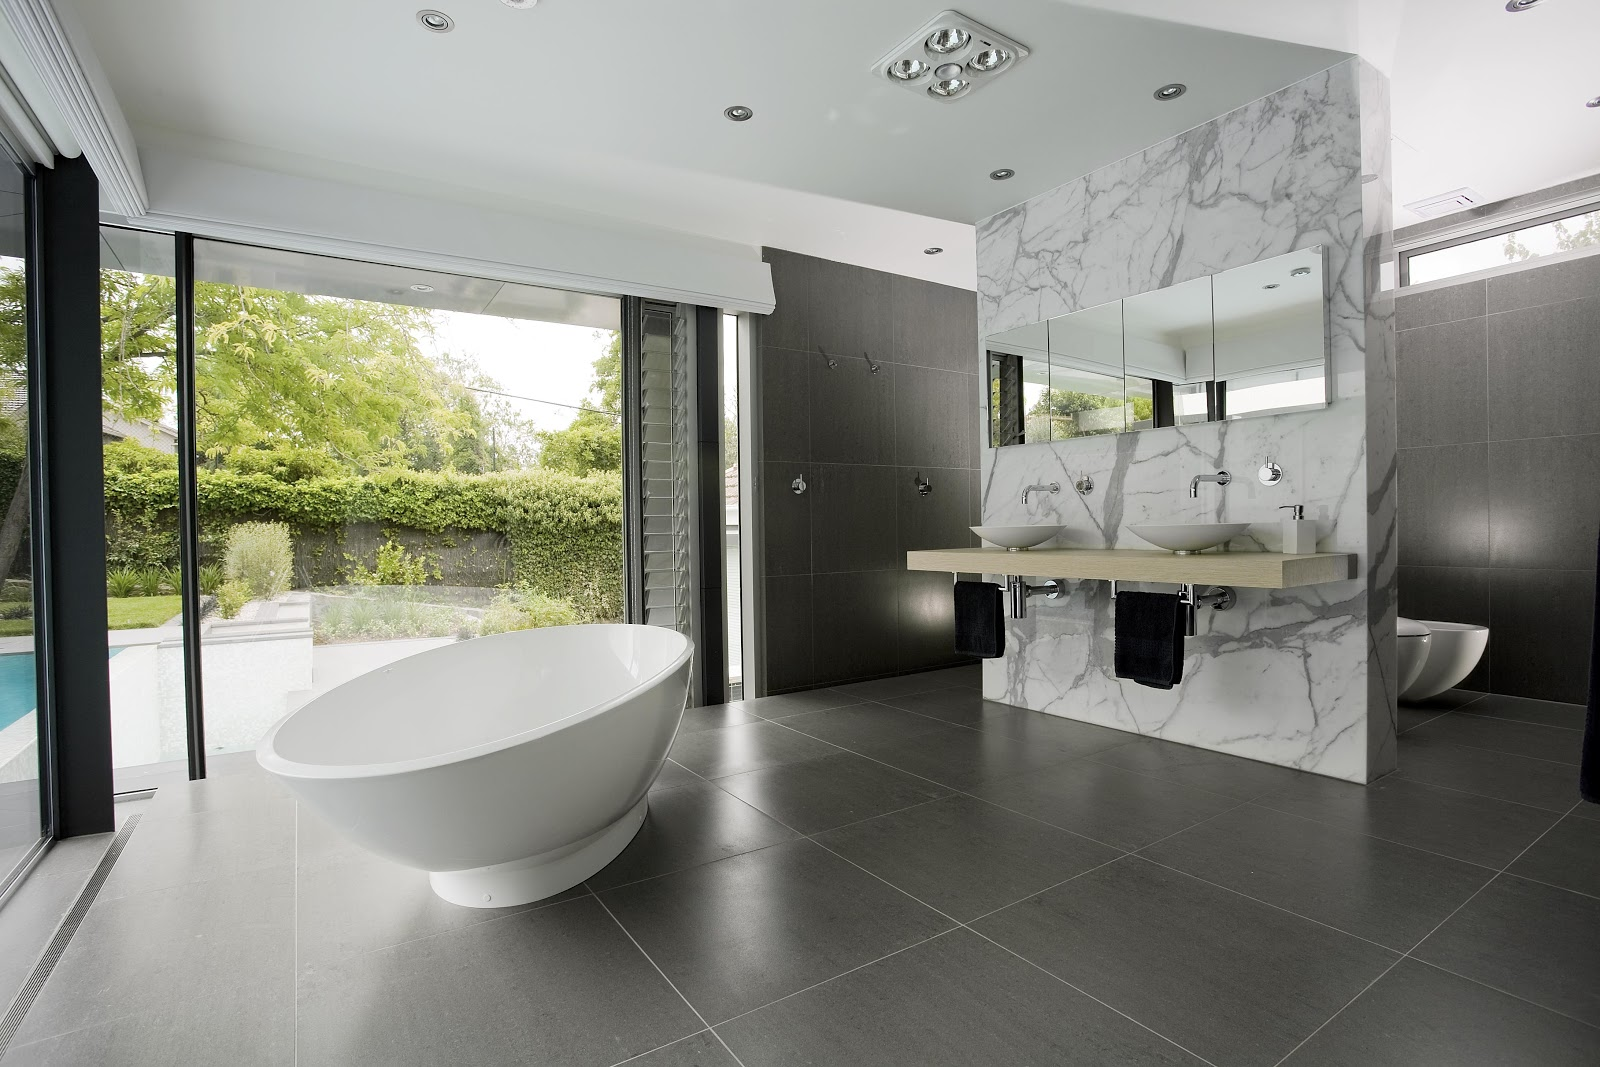 Minosa modern bathrooms the search for something different for New bathroom ideas images